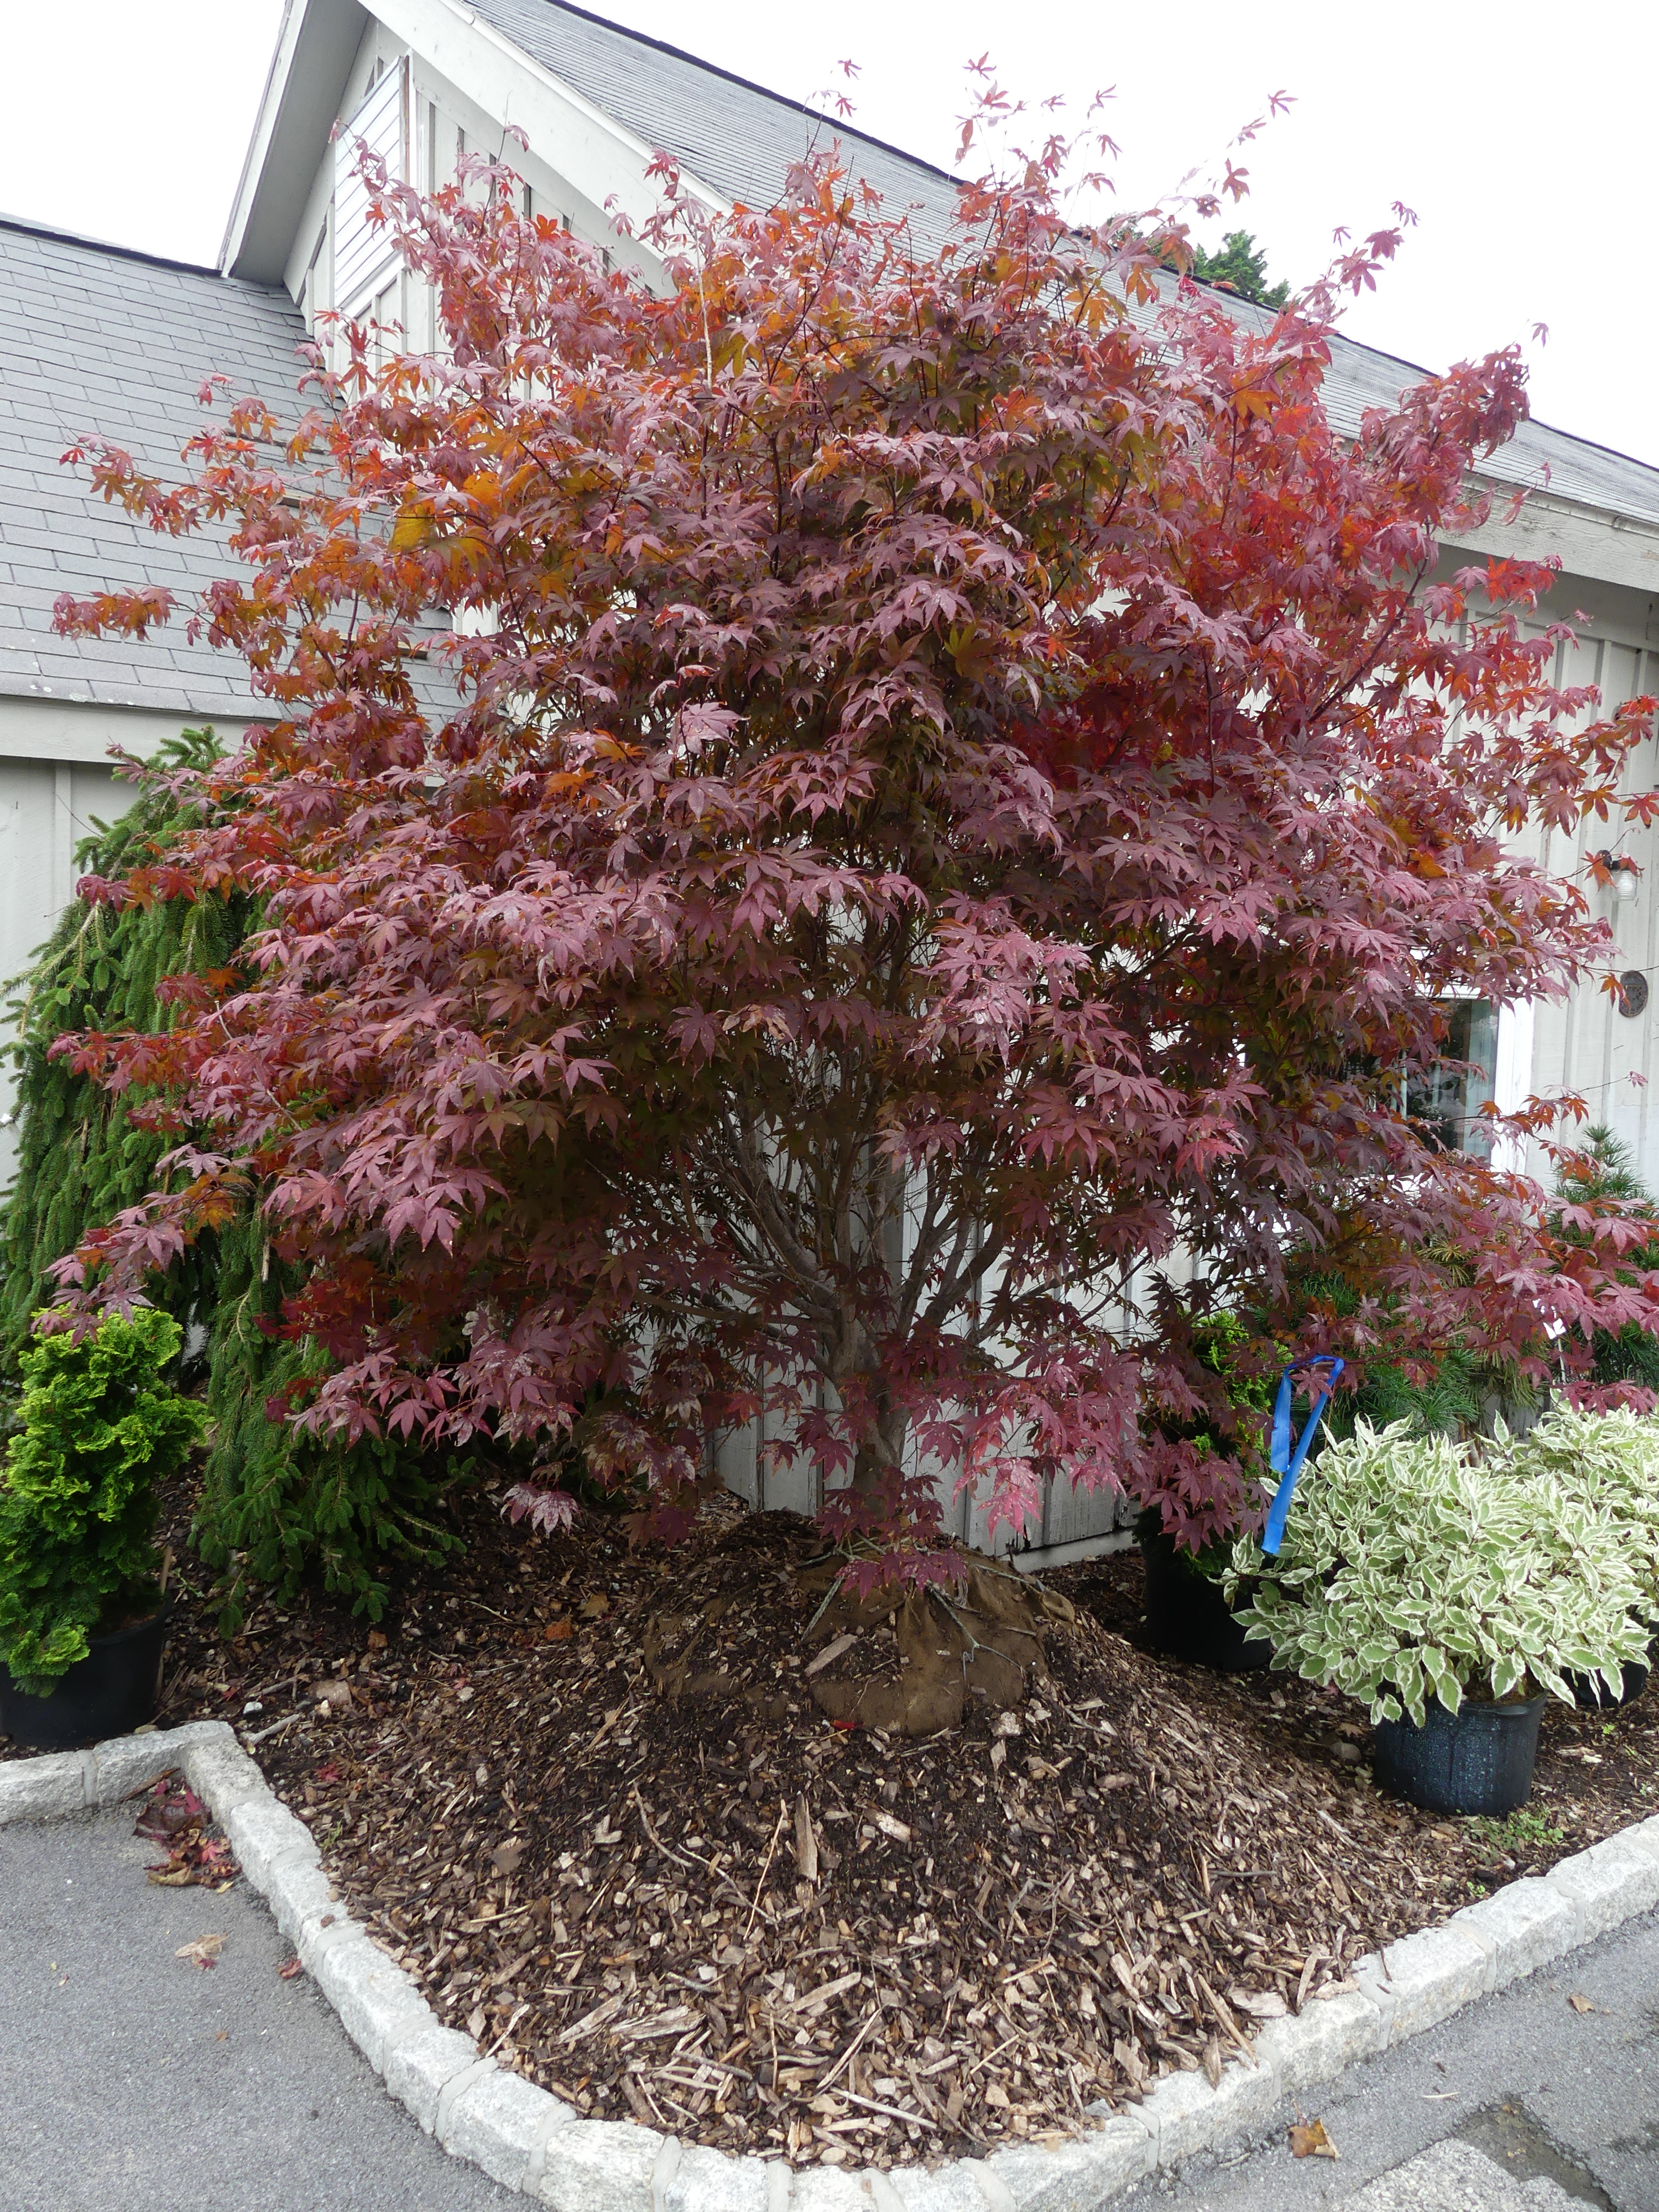 This Japanese maple was in front of a garden center waiting for a new owner. It's half its original price and looks like a nice specimen offering exquisite fall color as it will morph from red or orange and yellow as it gets colder. ANDREW MESSINGER